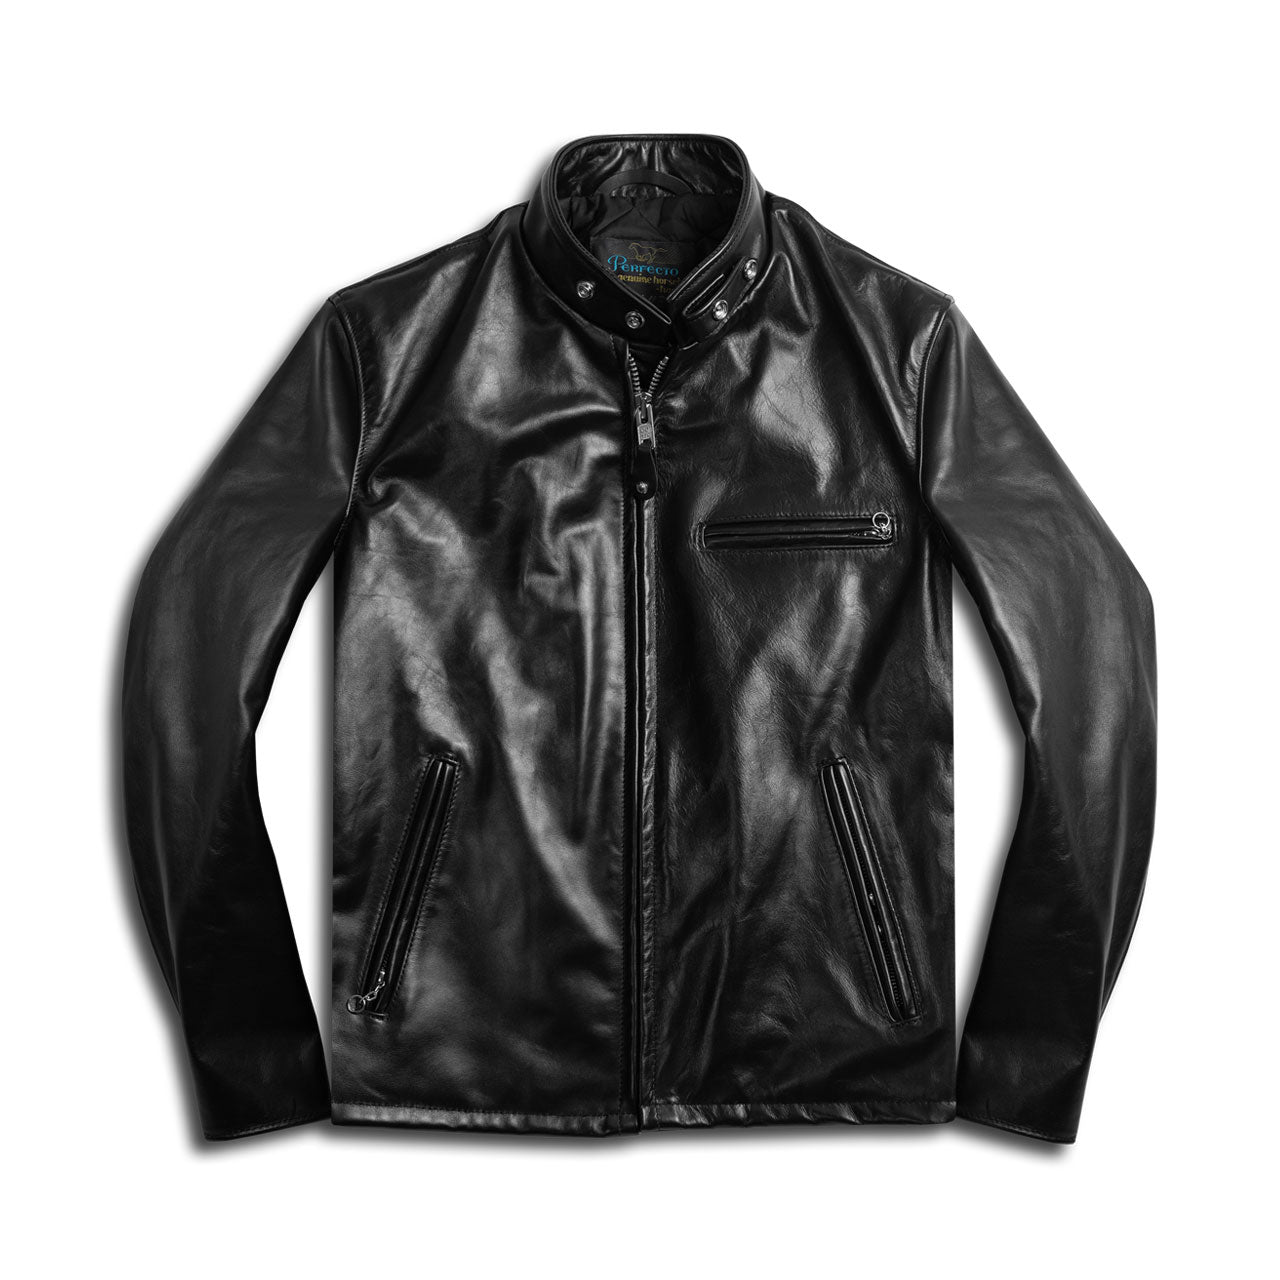 Schott NYC Perfecto Cafe Racer Jacket